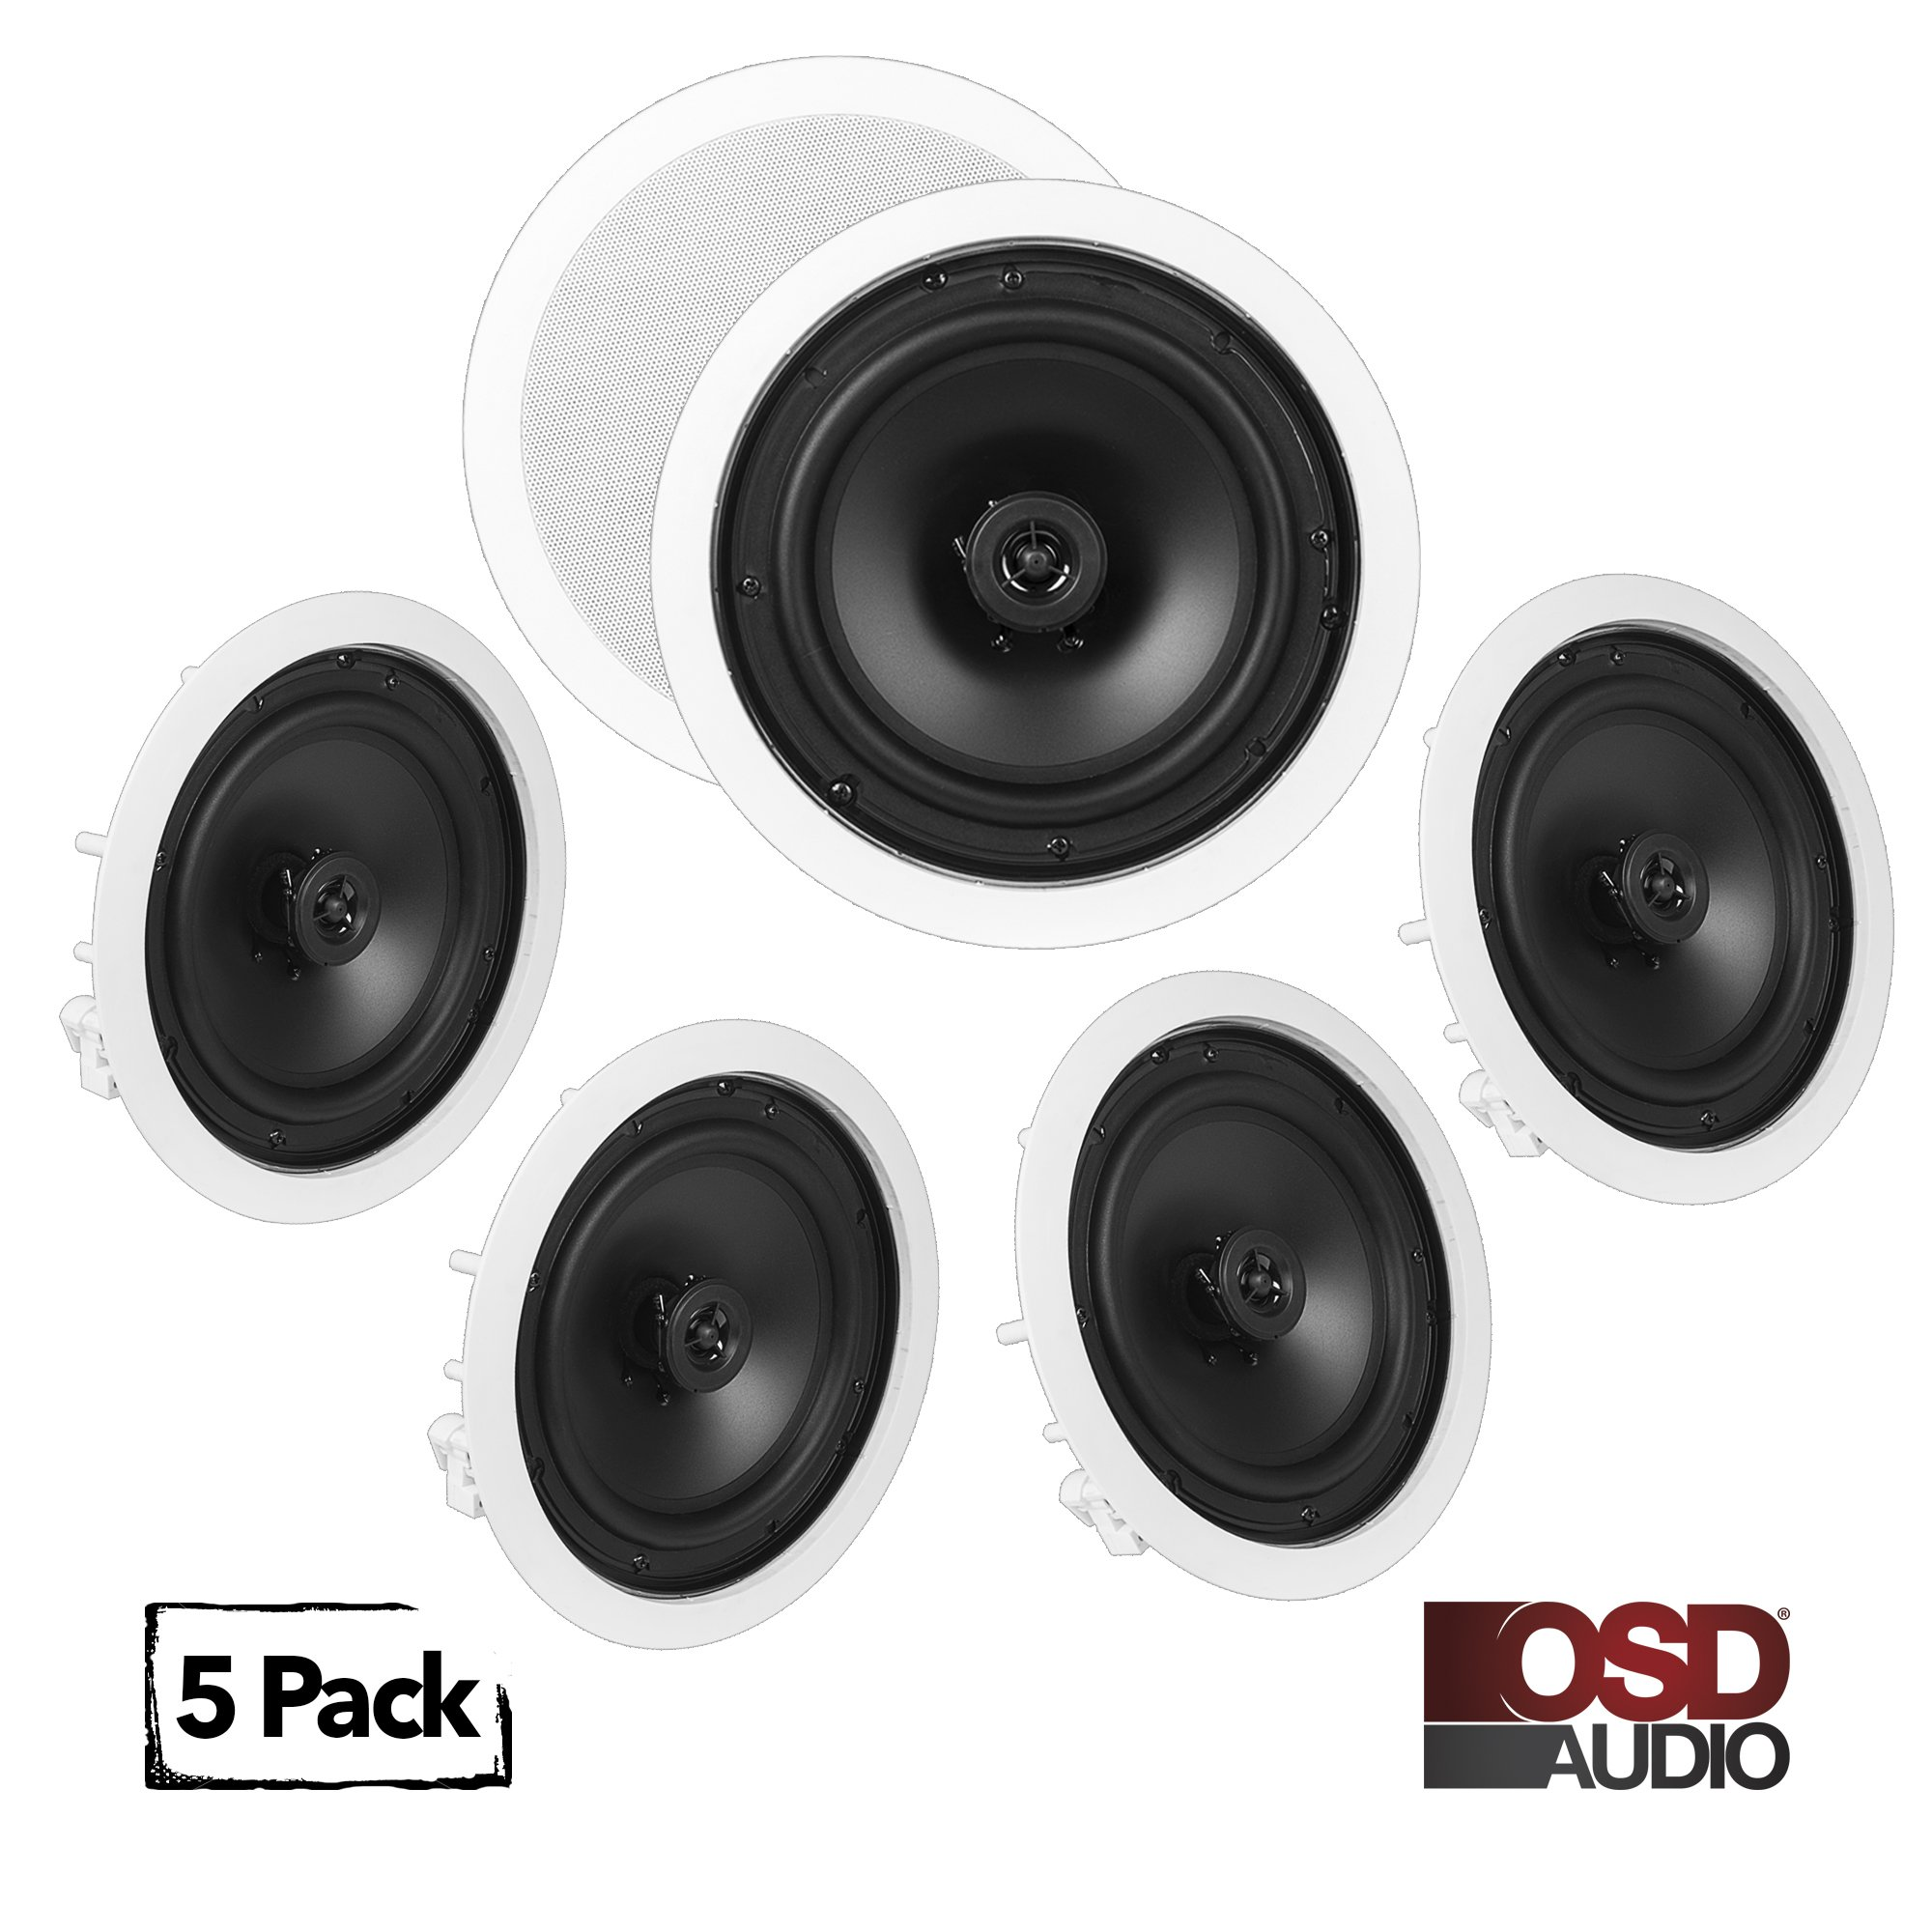 OSD Audio ICE800 In-Ceiling/In-Wall Speaker 1200W Home Theater 5-Speaker Package 8'' Woofer w/ PEI Pivoting Dome Tweeter Paintable Snap-In Grill by OSD Audio